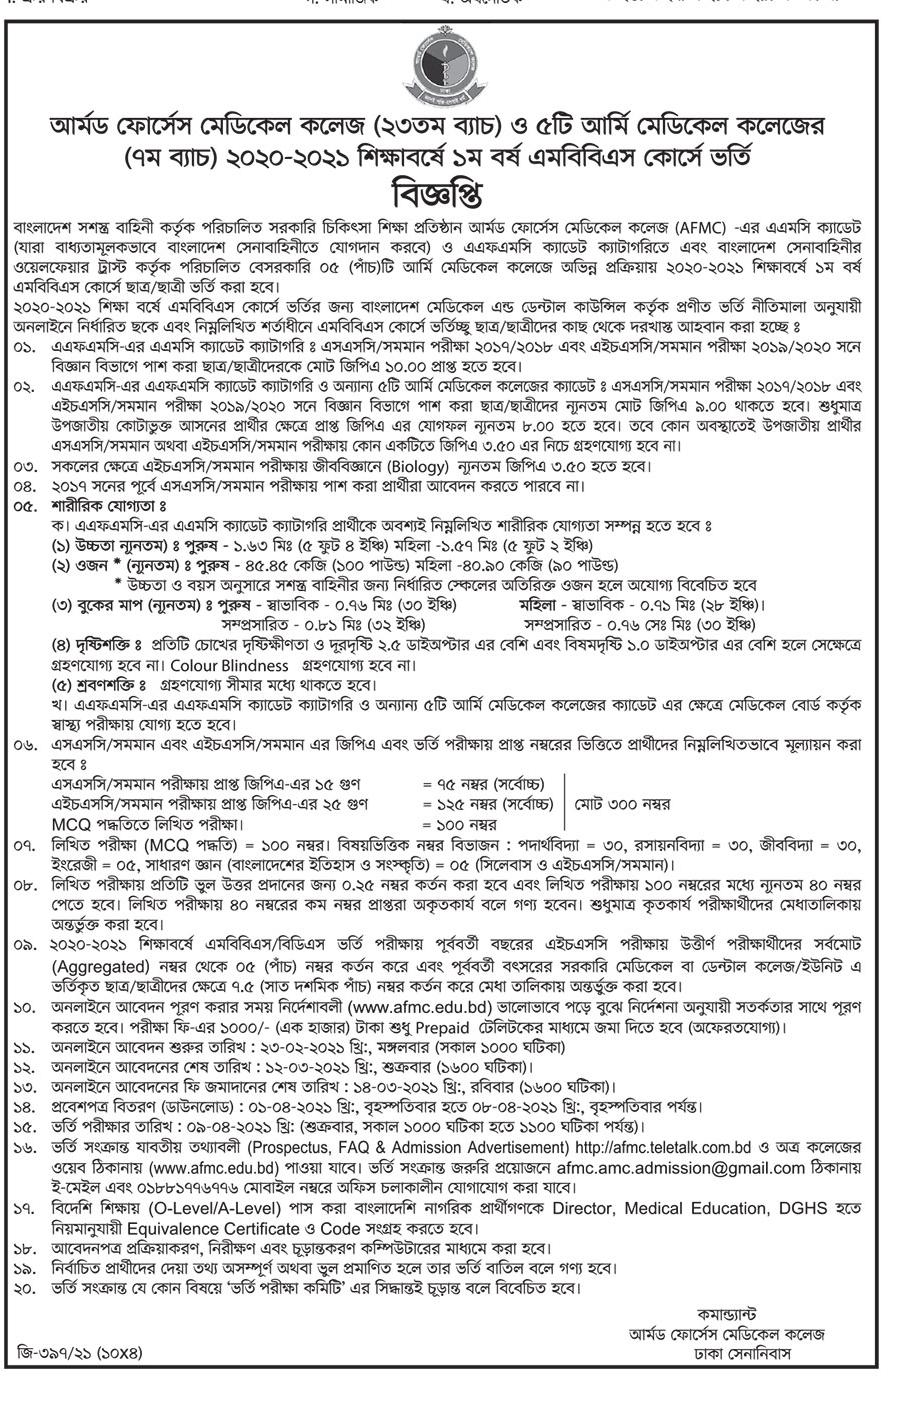 Armed Forces Medical College & Army Medical College MBBS Admission Circular 2021